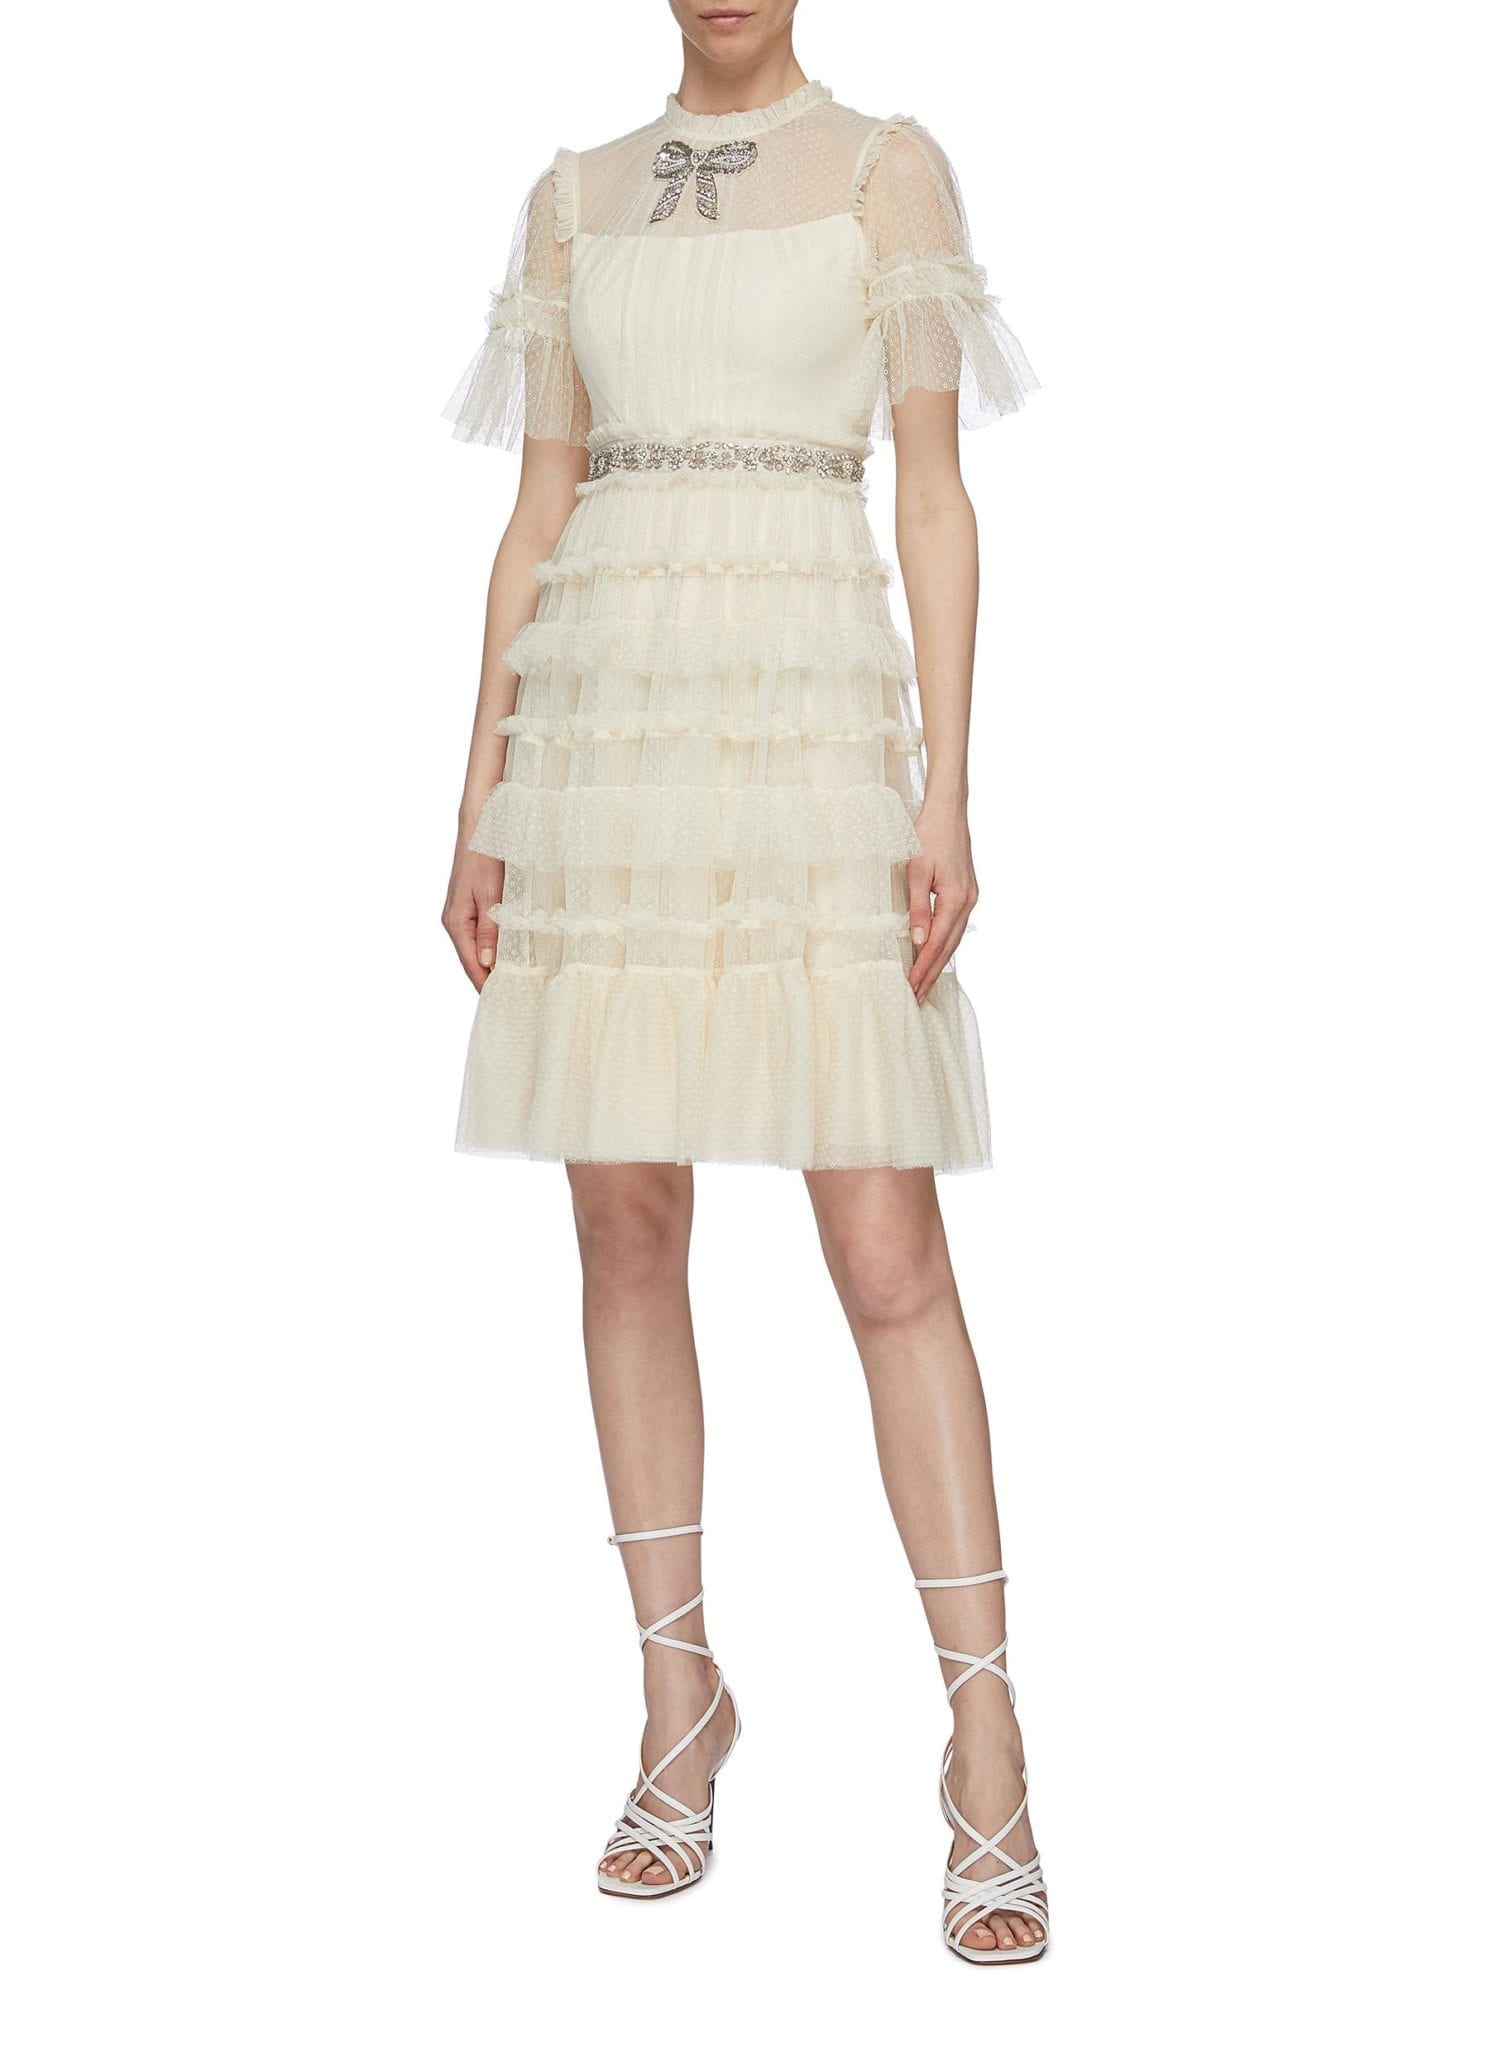 NEEDLE & THREAD 'Embellished Bow' Ruffle Trim Tiered Tulle Dress